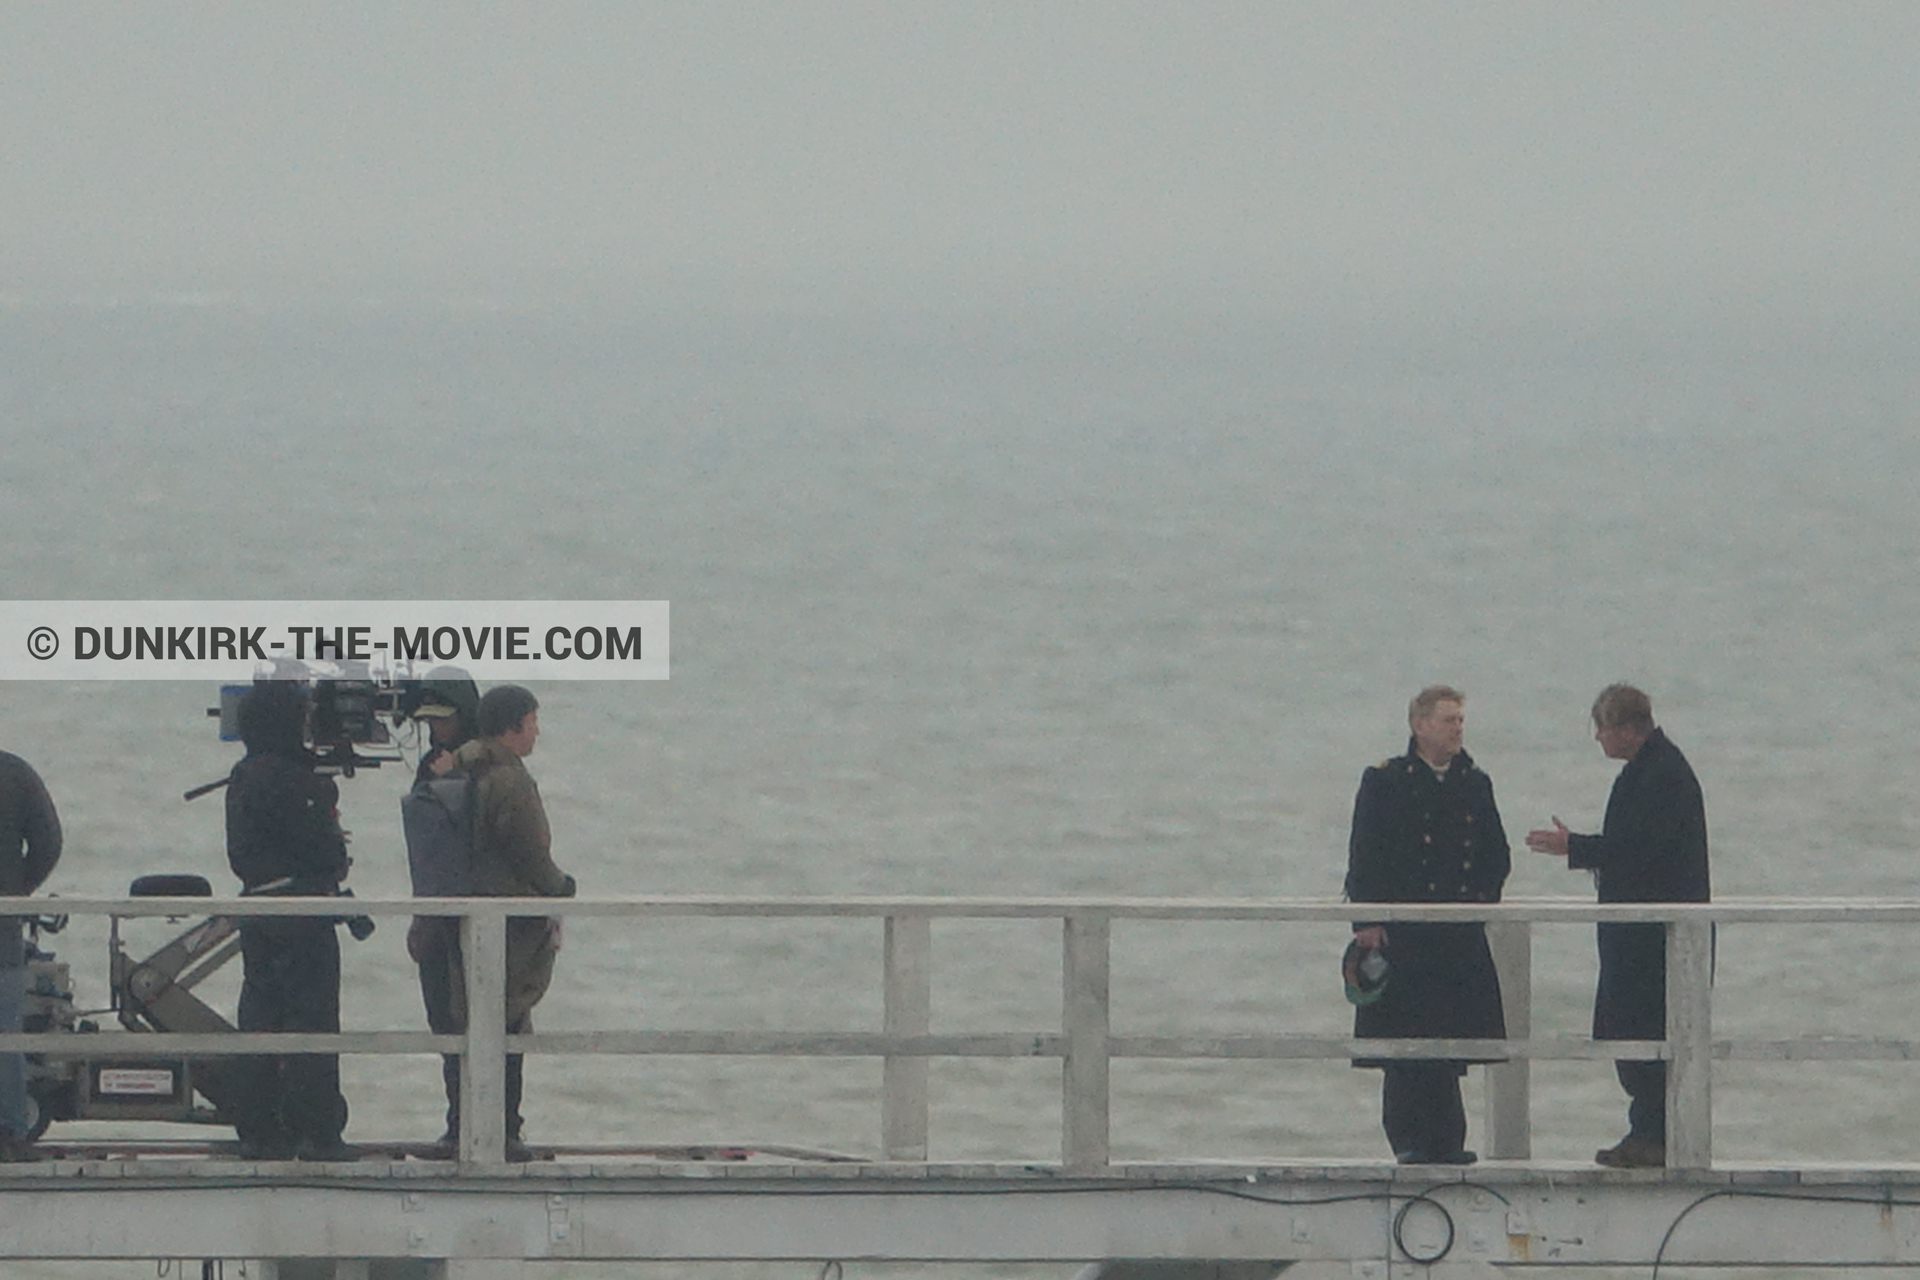 Picture with grey sky, EST pier, Kenneth Branagh, Christopher Nolan, technical team,  from behind the scene of the Dunkirk movie by Nolan